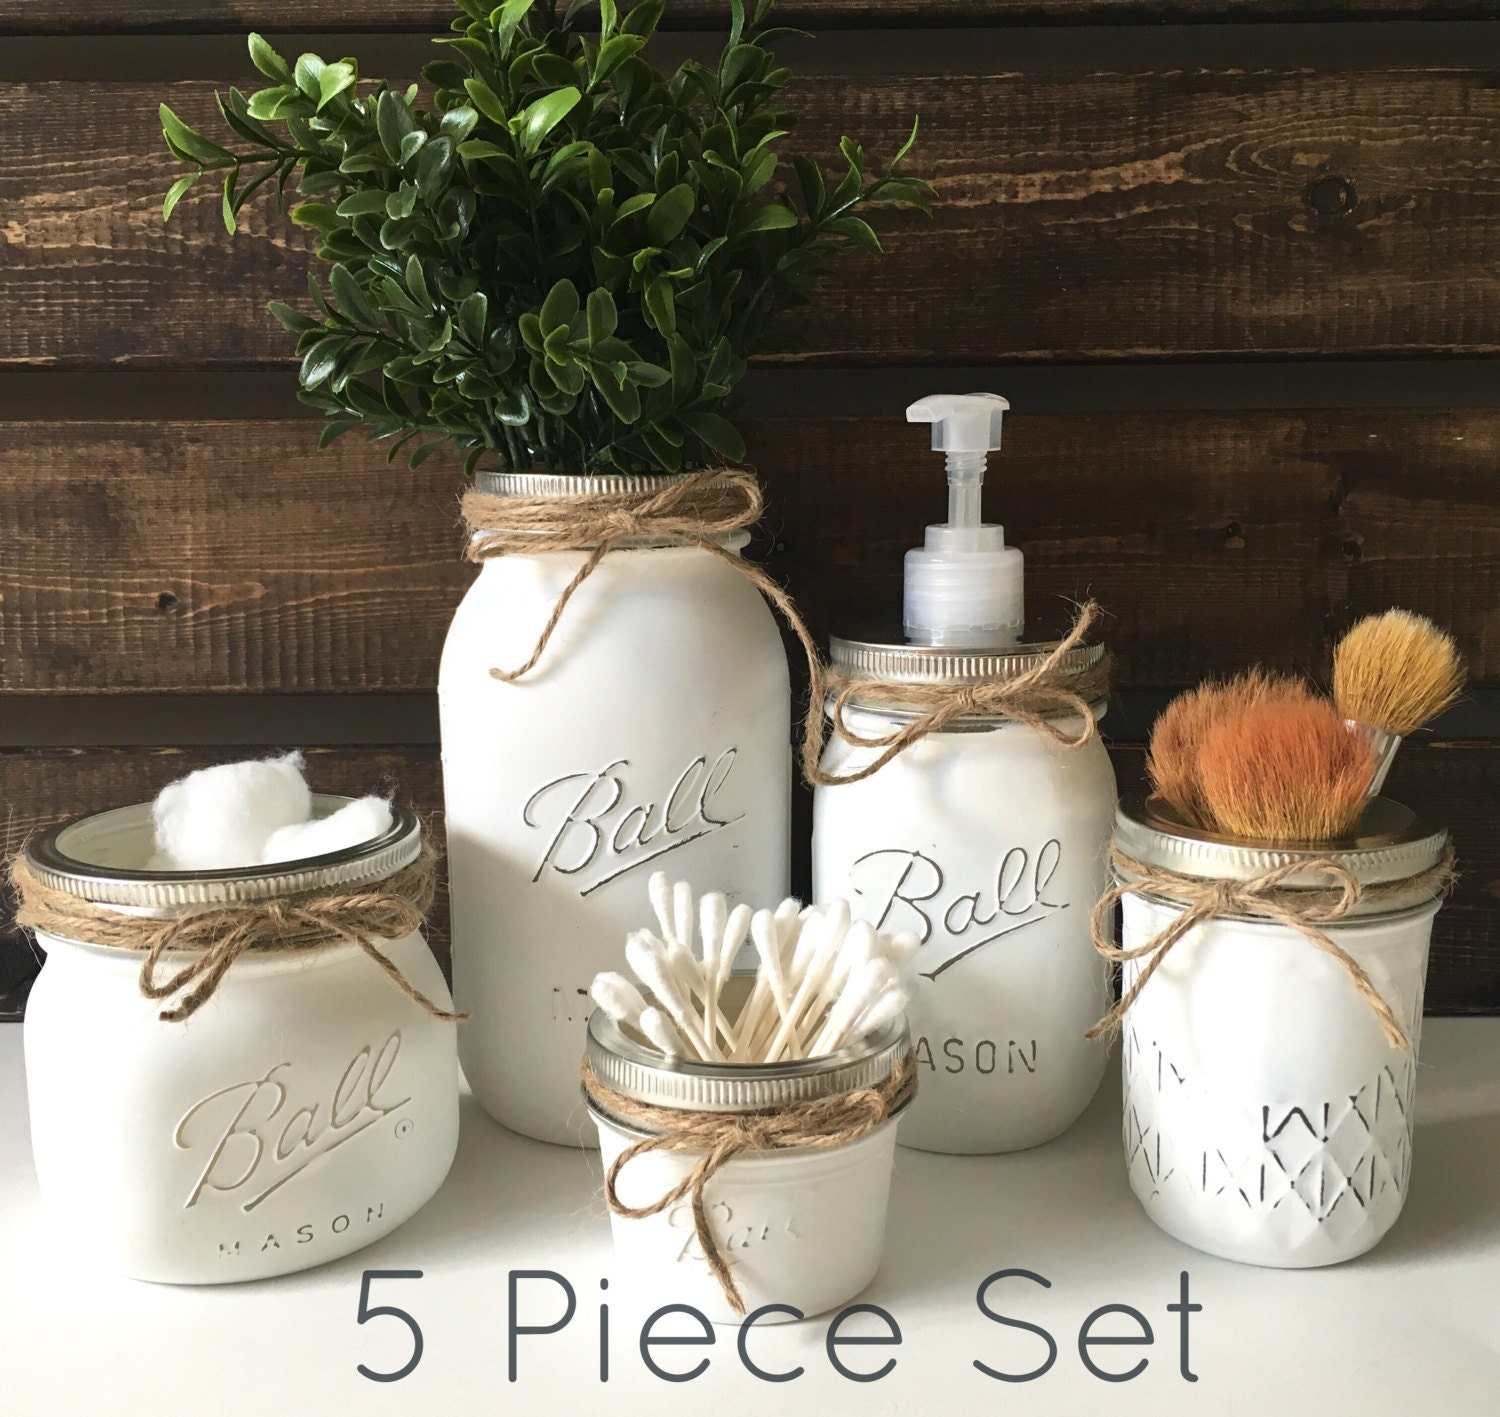 What To Put In Mason Jars For Decoration: Mason Jar Set Mason Jar Decor Home By LetterFlyDesigns On Etsy